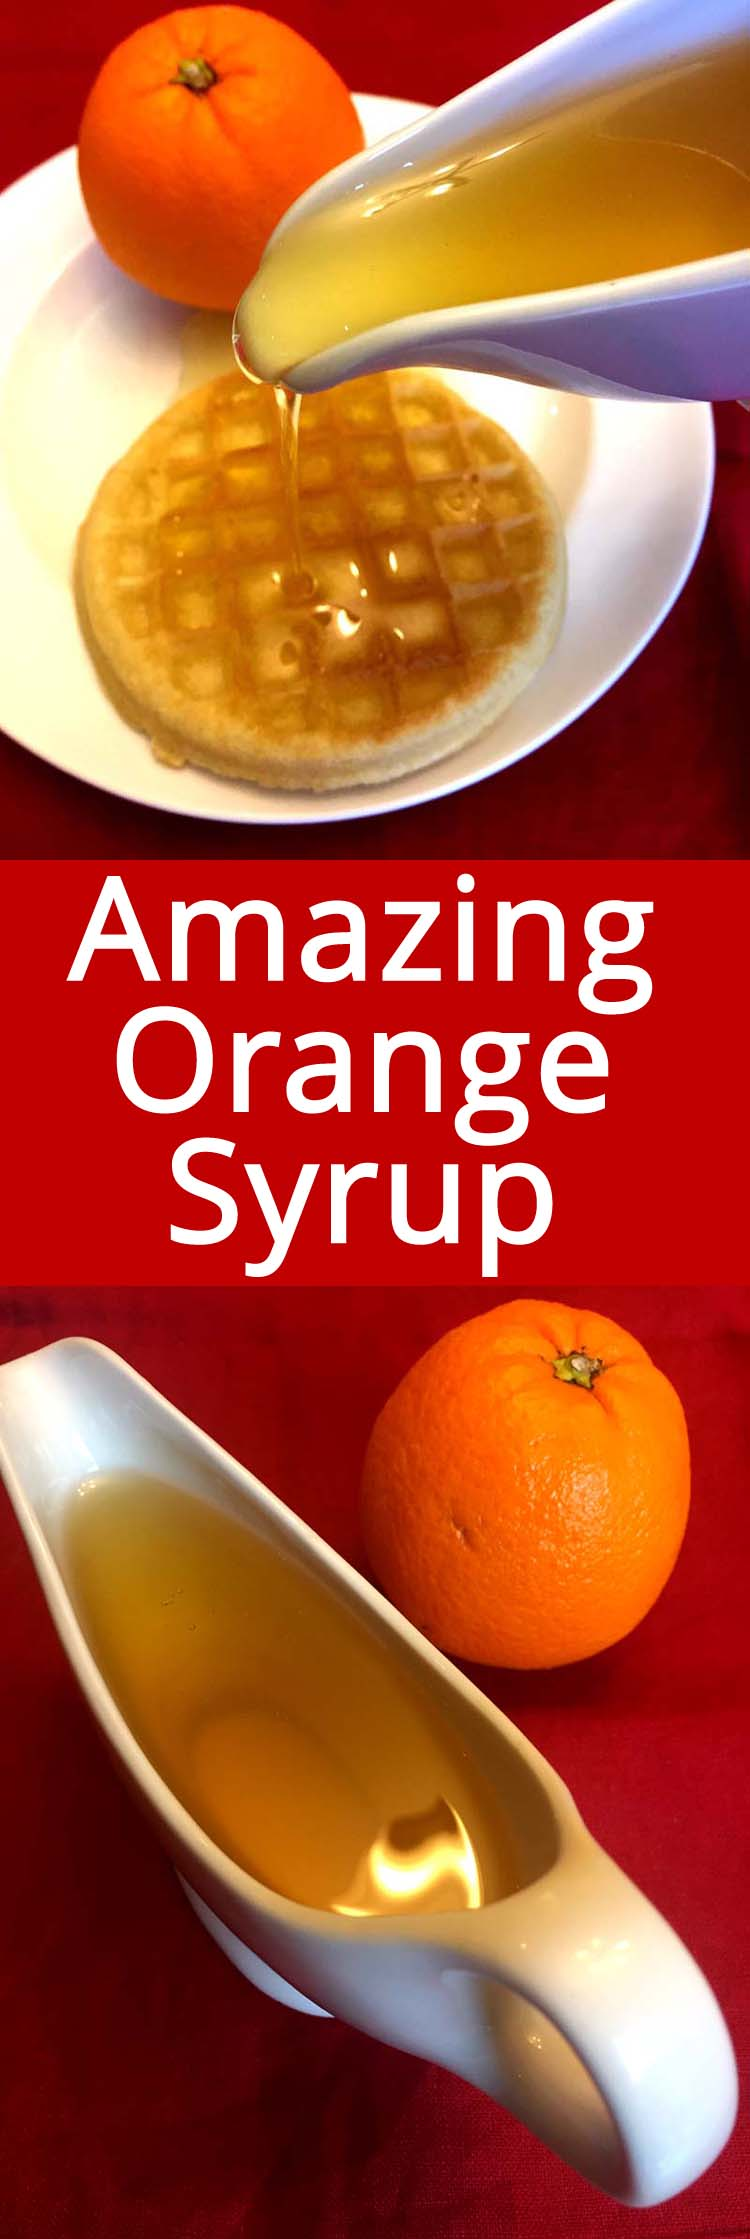 This homemade orange syrup is simply amazing!  It has such a deep citrus flavor, it's mouthwatering! It takes a simple pancake breakfast to a whole new level! Great for sweetening drinks too!